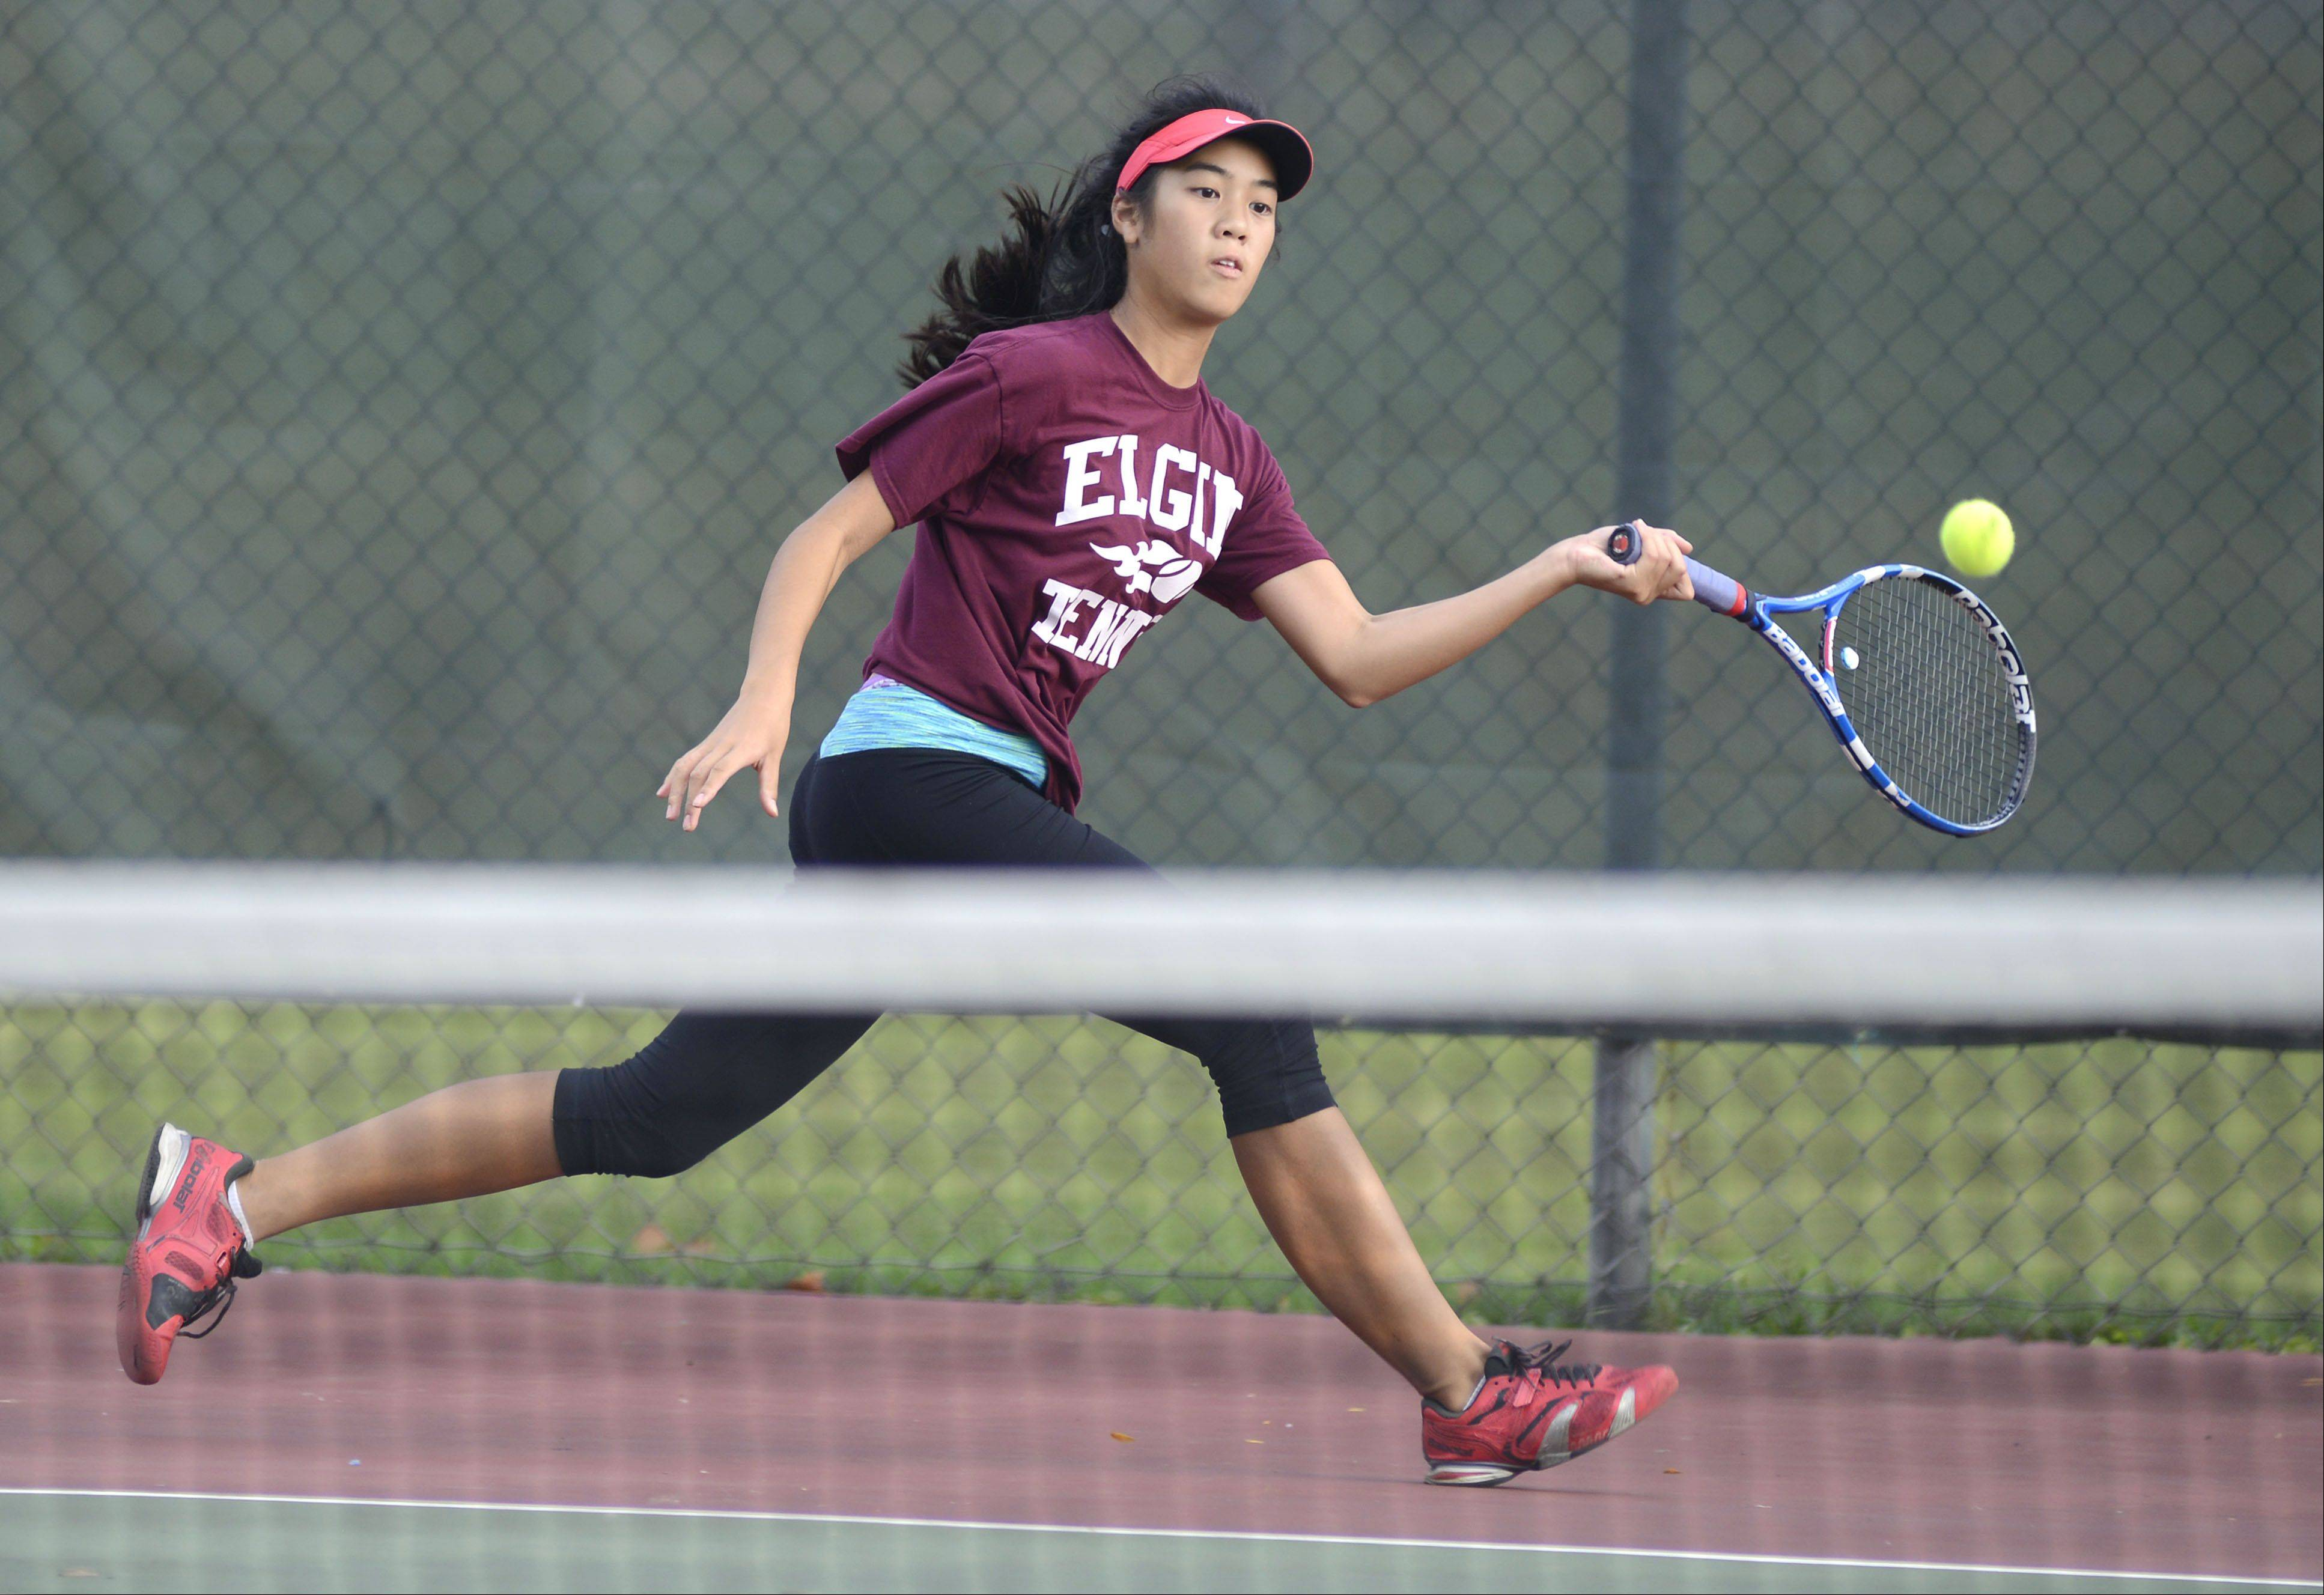 Elgin's Dahlia Keonavongsa in the first singles final match at the Upstate Eight Conference in Geneva on Saturday, October 12.